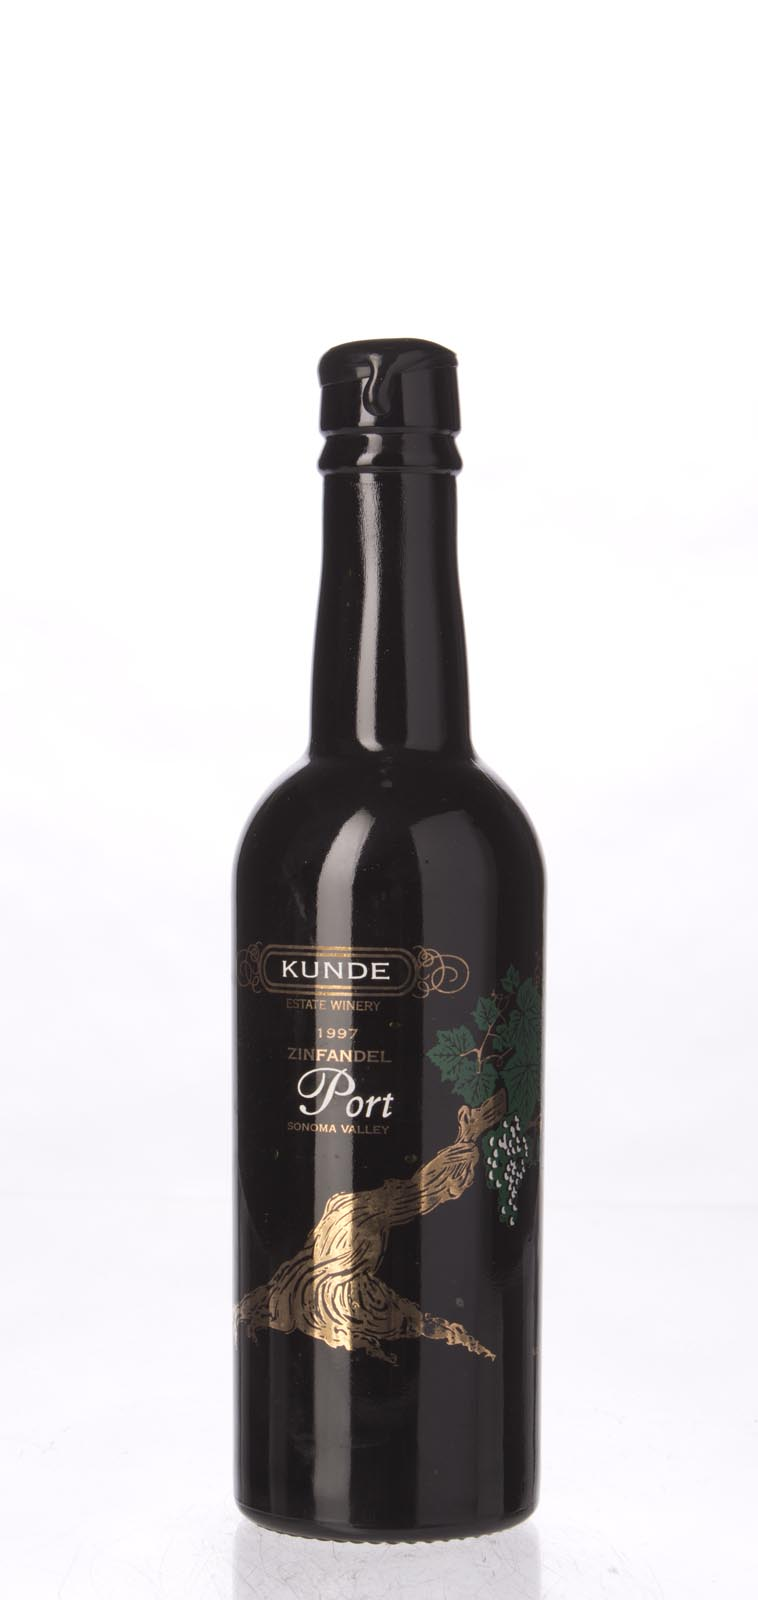 Kunde Estate Zinfandel Port 1997, 375ml () from The BPW - Merchants of rare and fine wines.